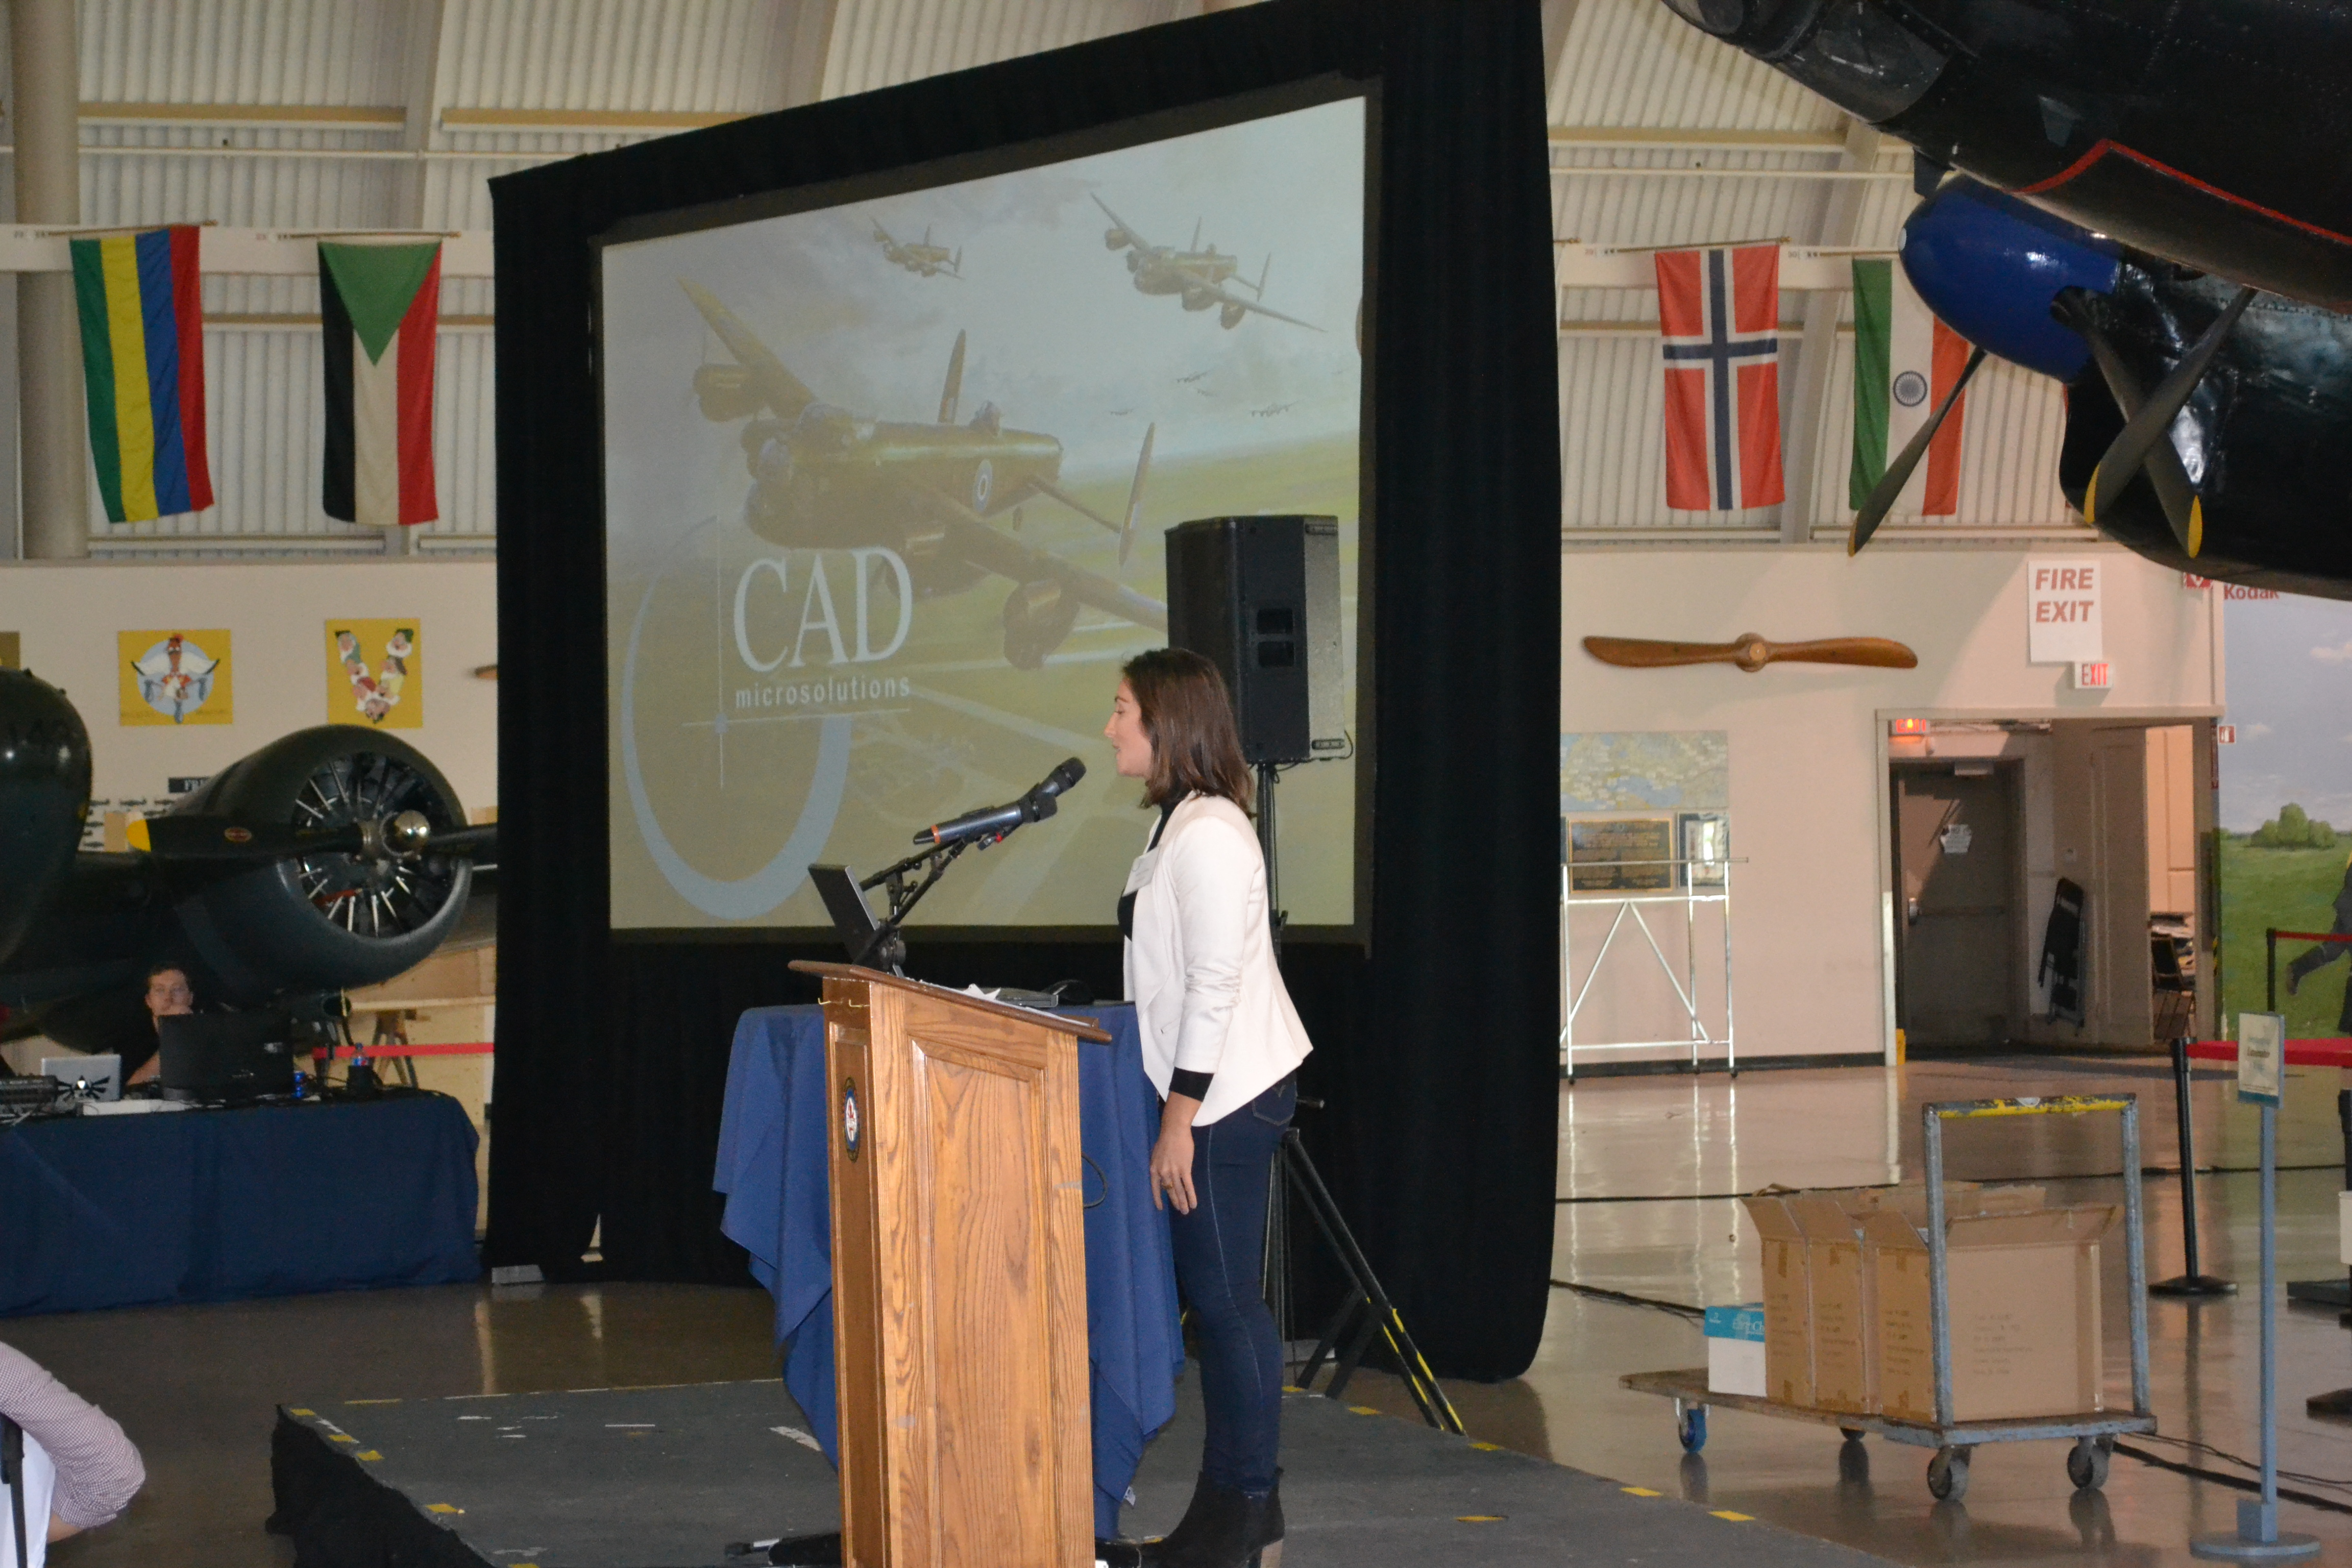 CAD MicroSolutions 2017 Launch Event Gallery